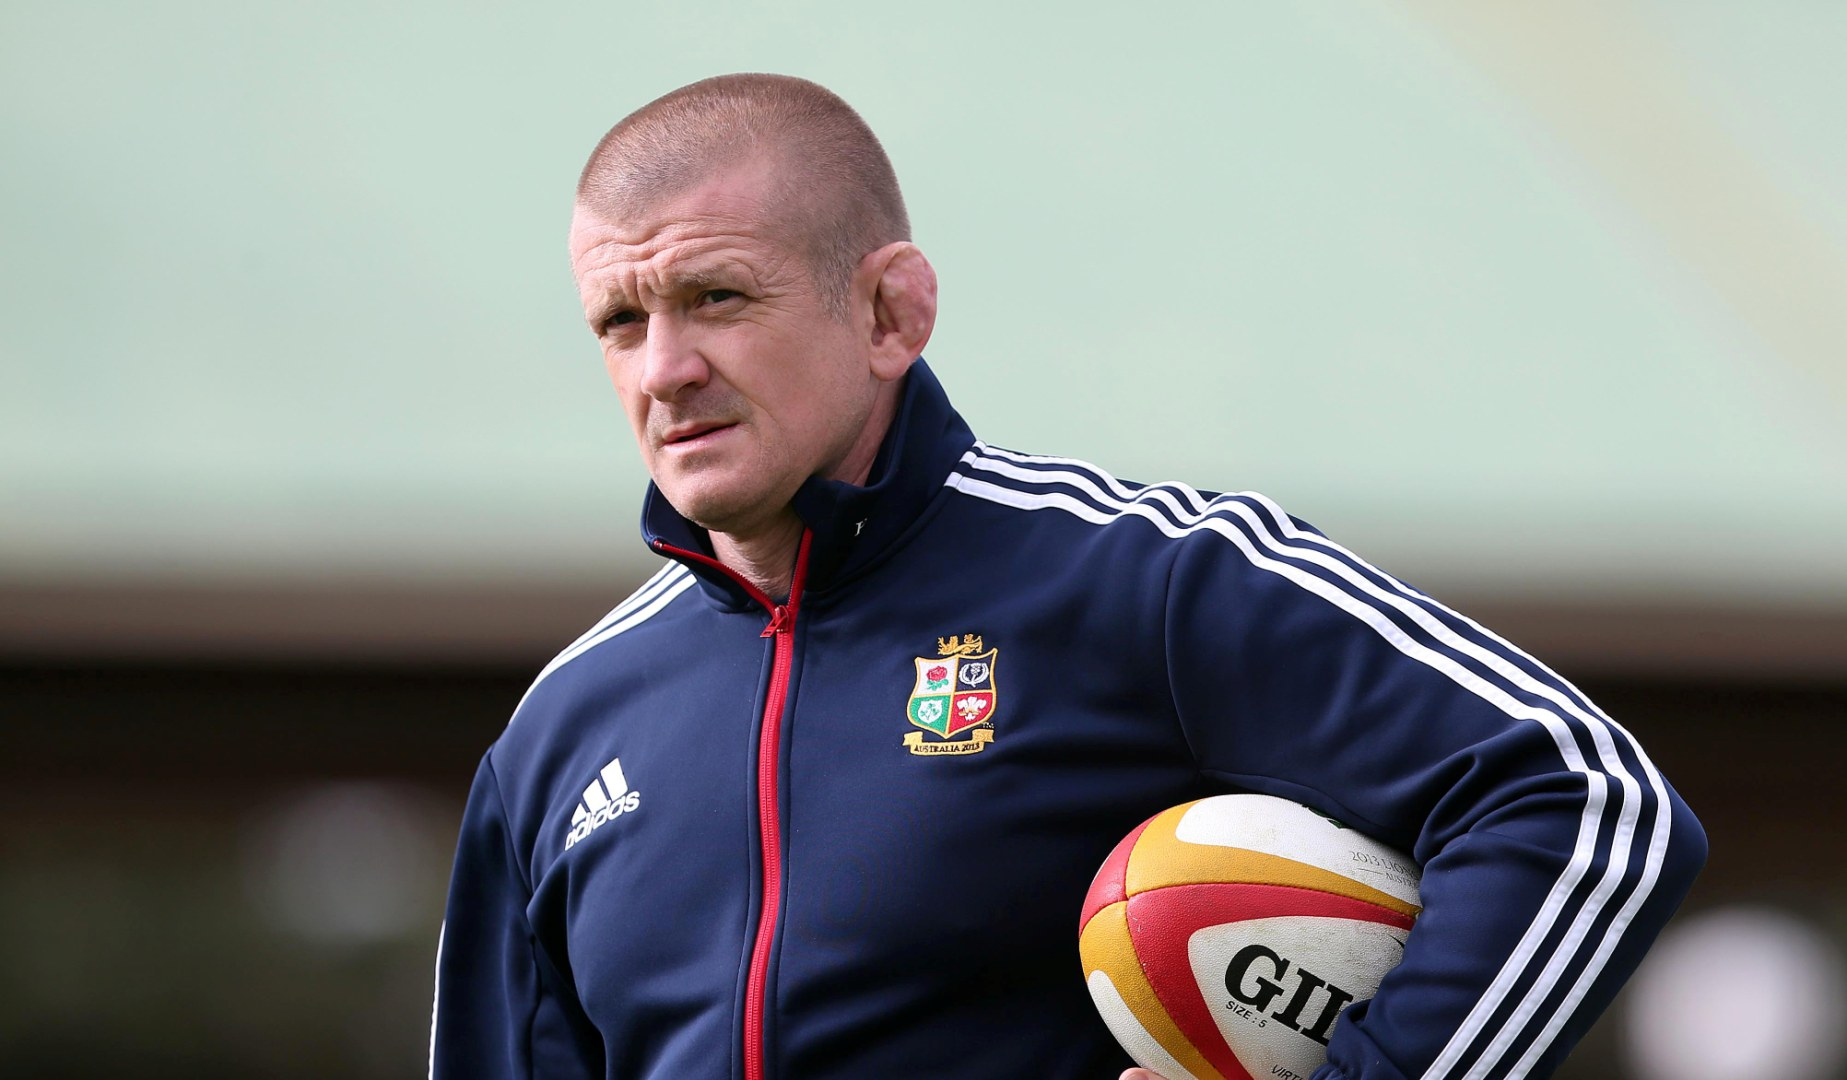 Rowntree excited to take on a 'new adventure'